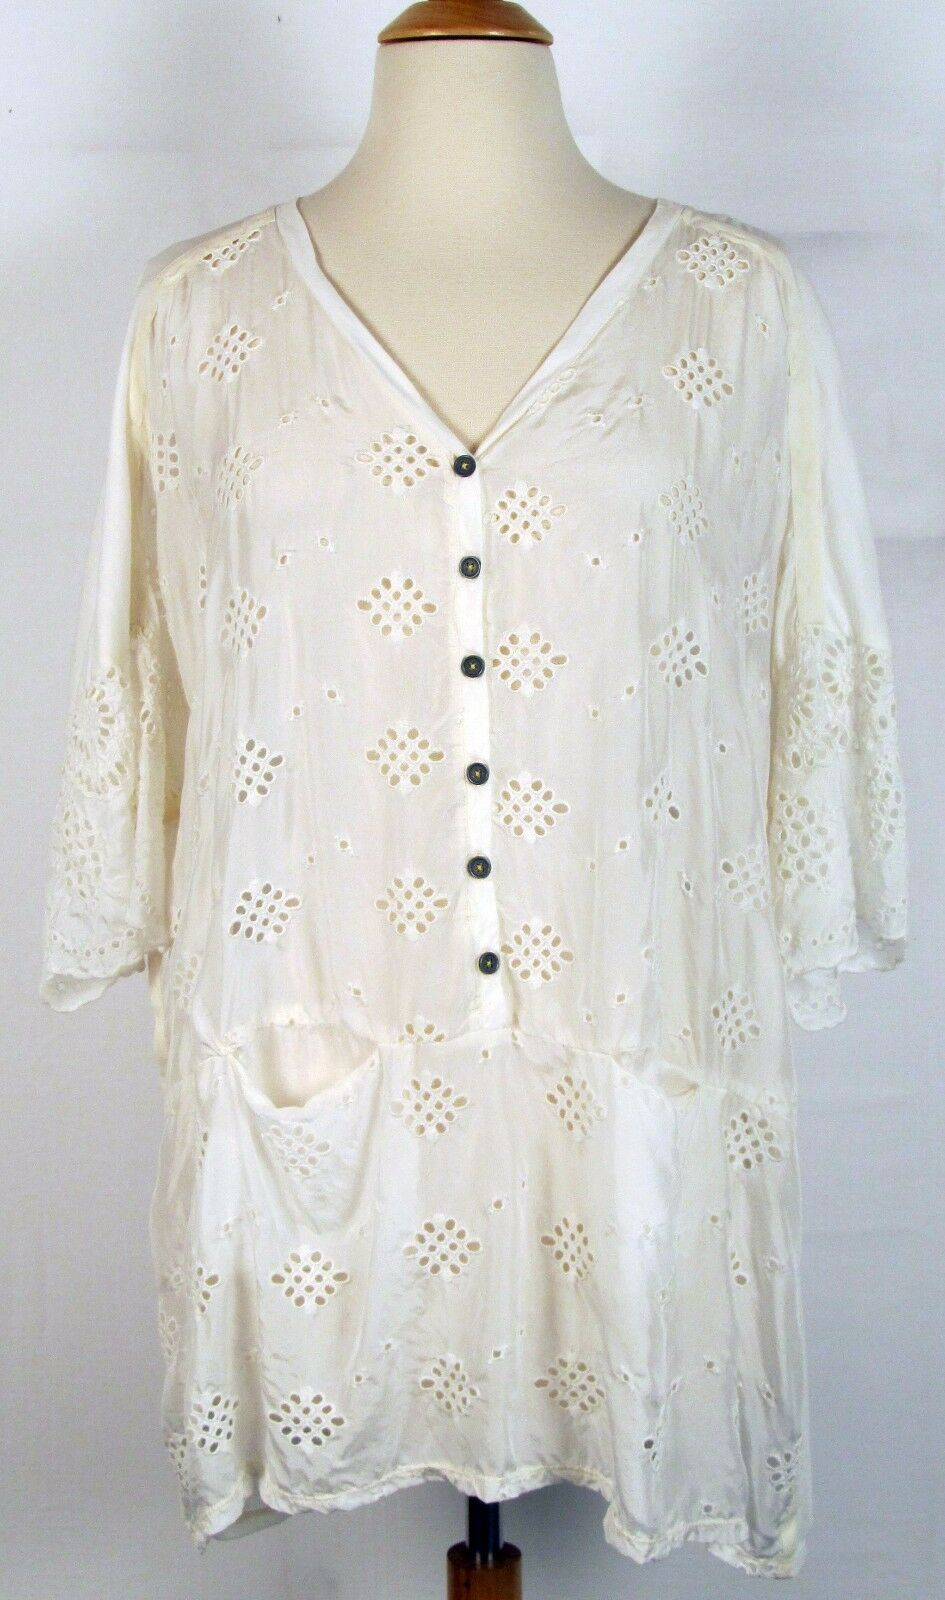 Johnny Was Pete & Greta Arlo Top in Natural Weiß Sz S overGrößed blouse NWT